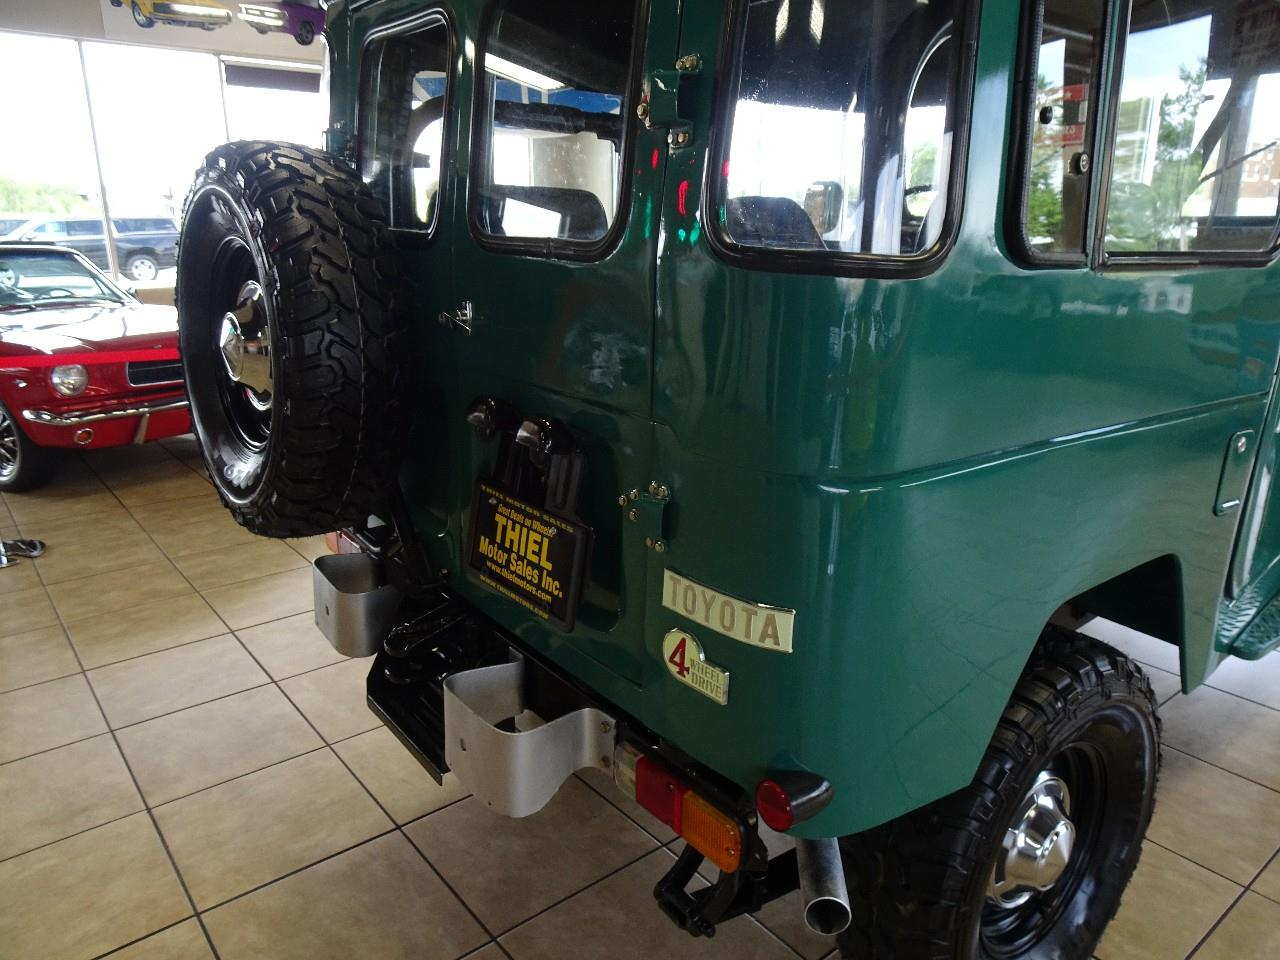 Large Picture of '78 Toyota Land Cruiser FJ40 located in Iowa - $29,997.00 Offered by Thiel Motor Sales Inc. - QCAV